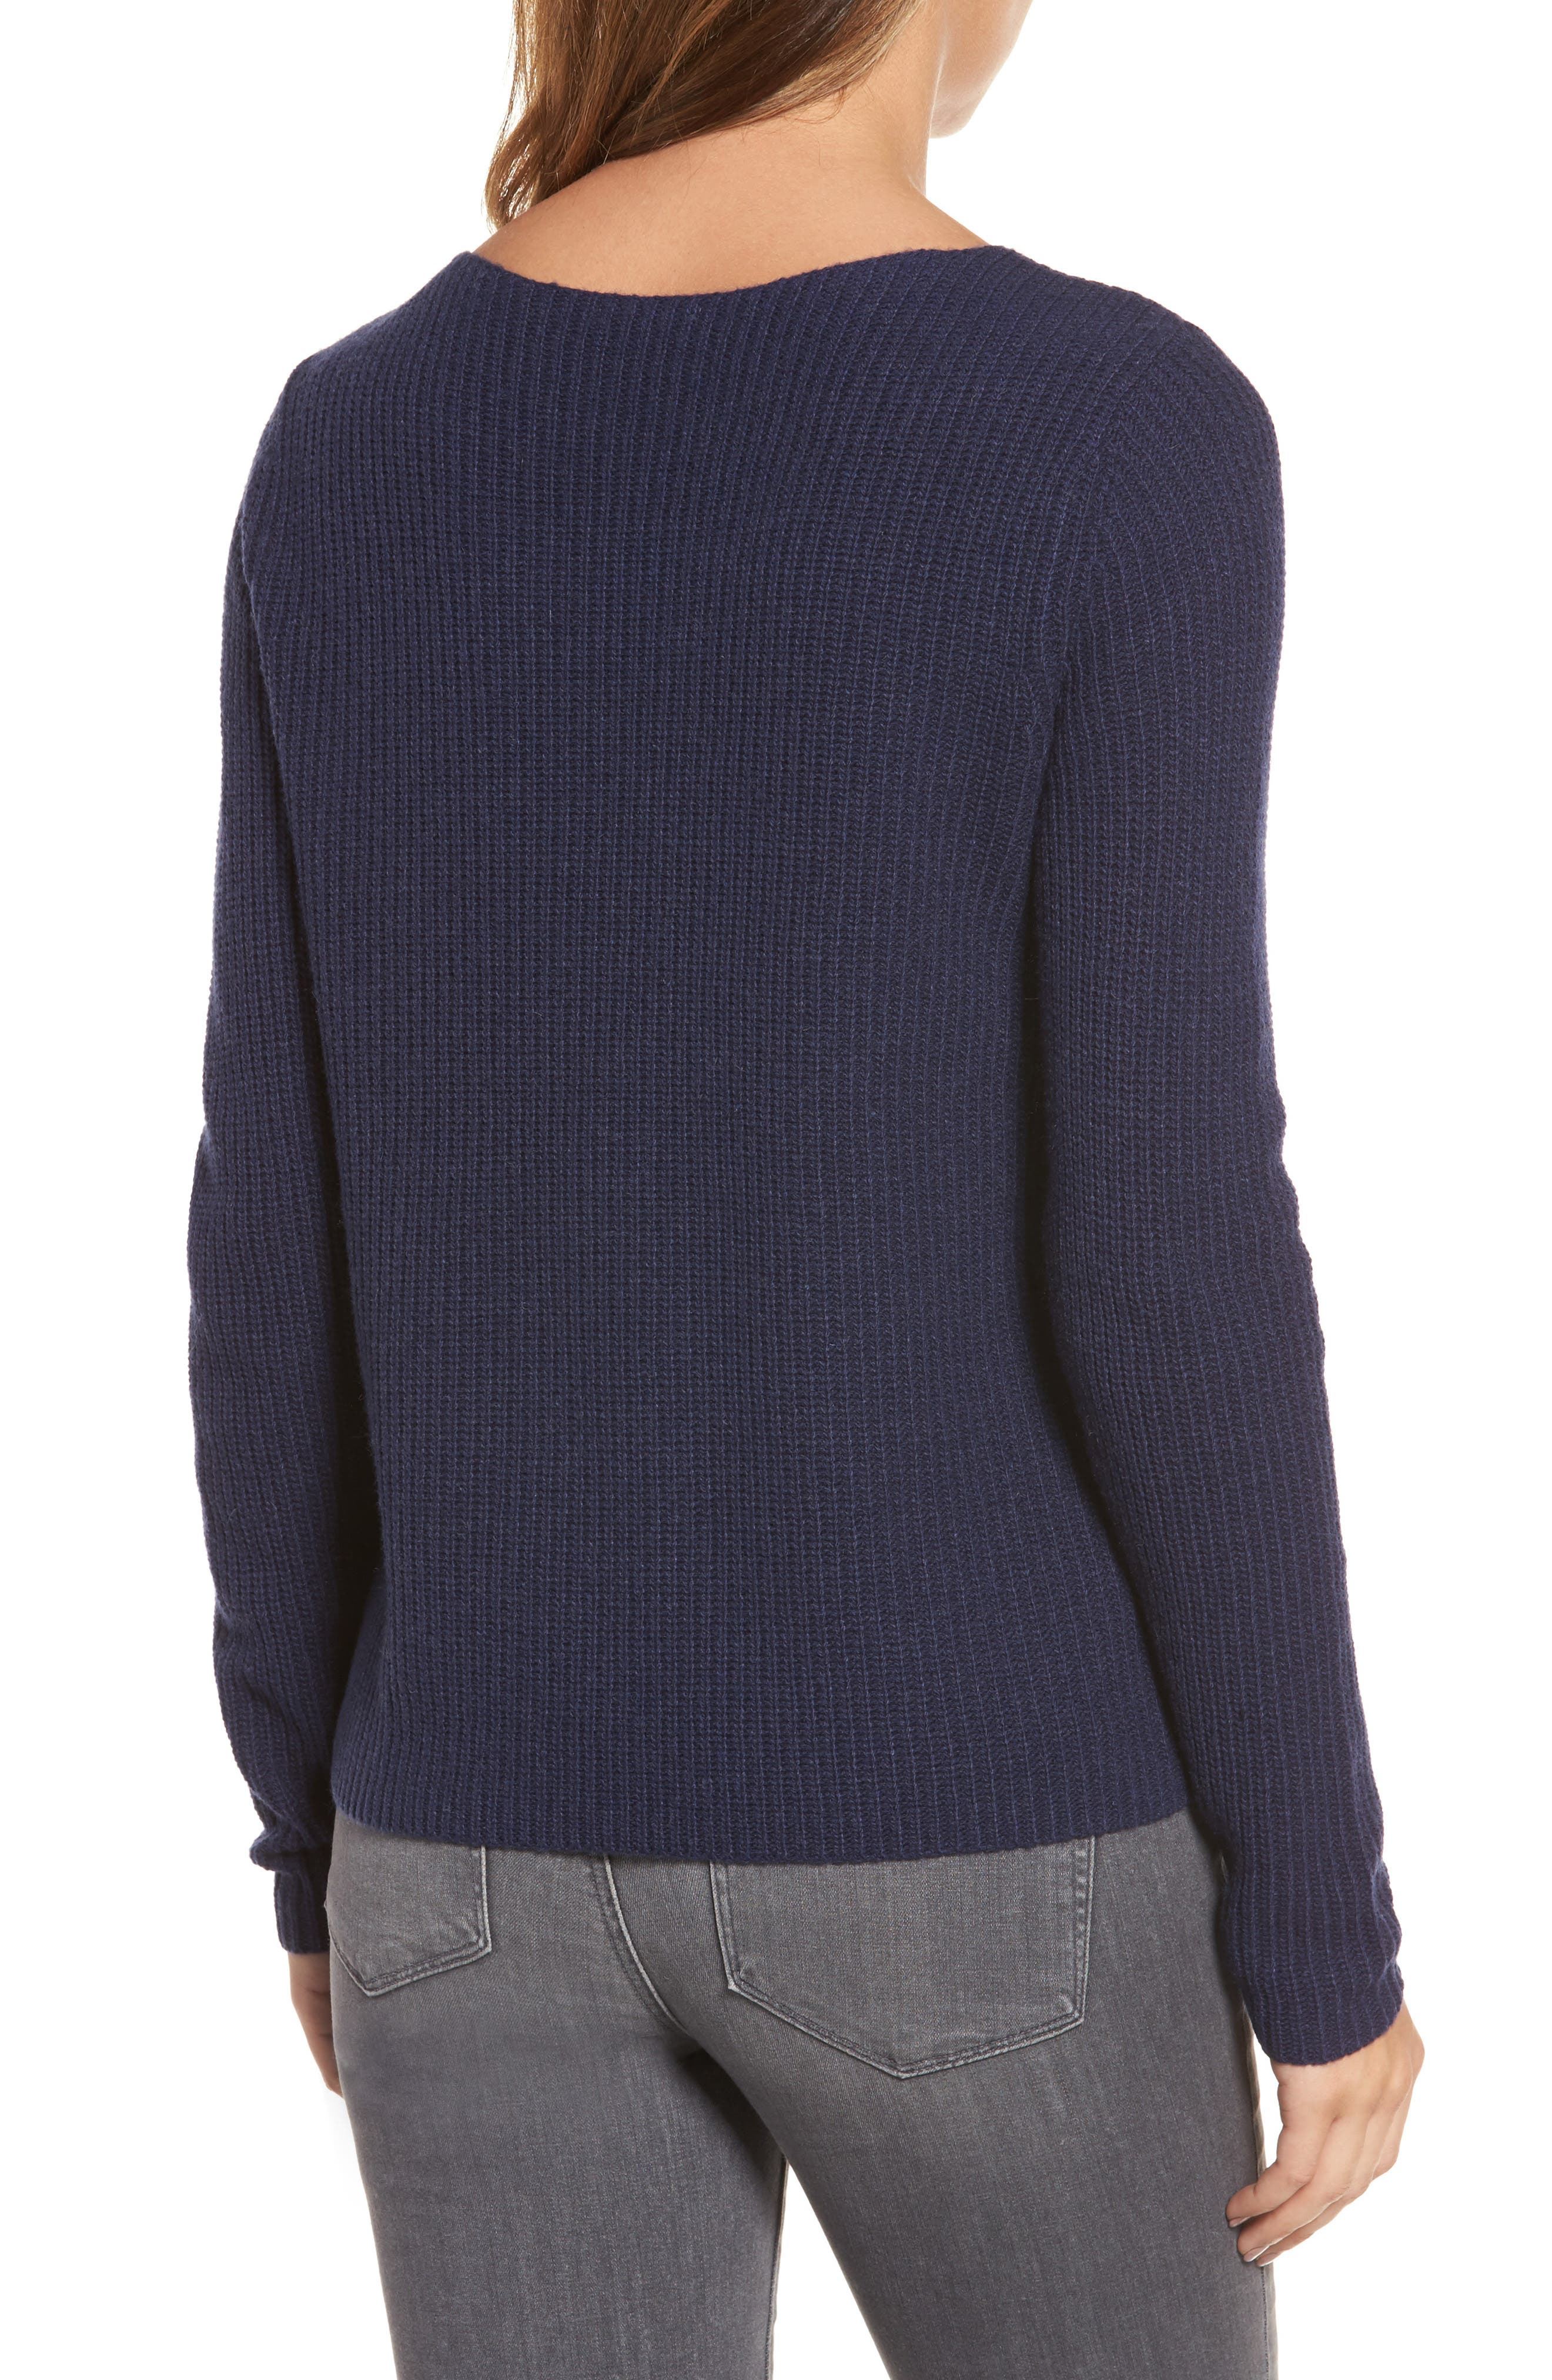 Blue Sweaters & Sweatshirts, Cowl Necks, Cable Knits | Nordstrom ...